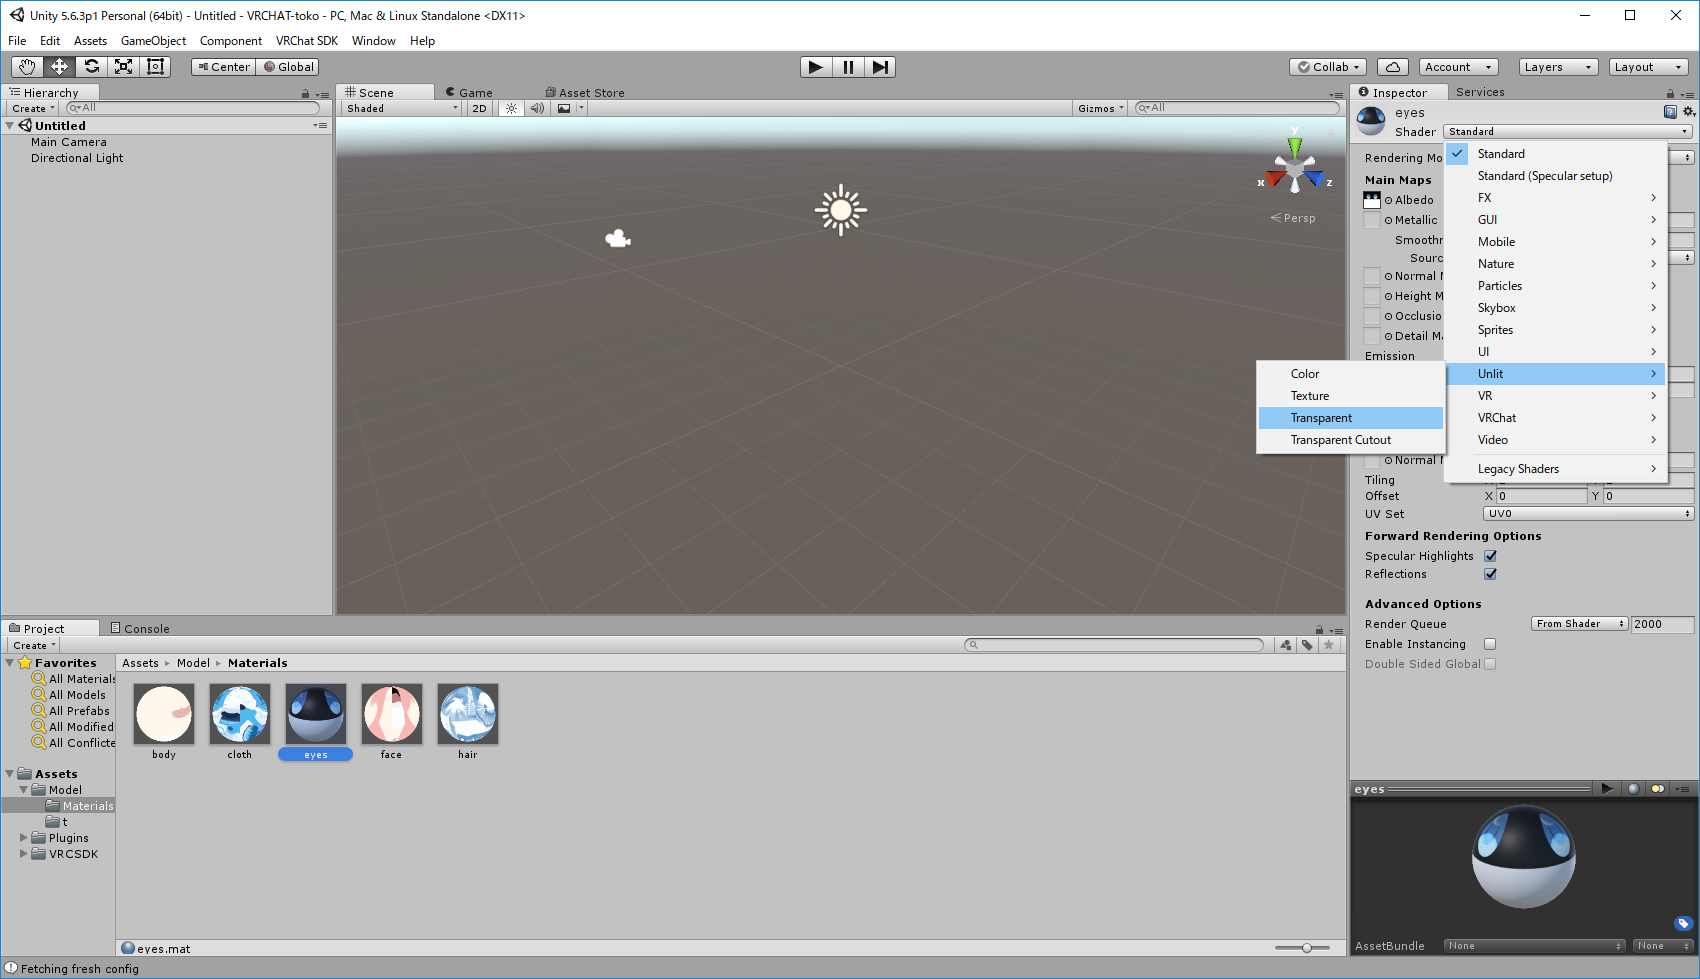 eyesは、InspectorのShaderを「Until」→「Transparent」に設定する。